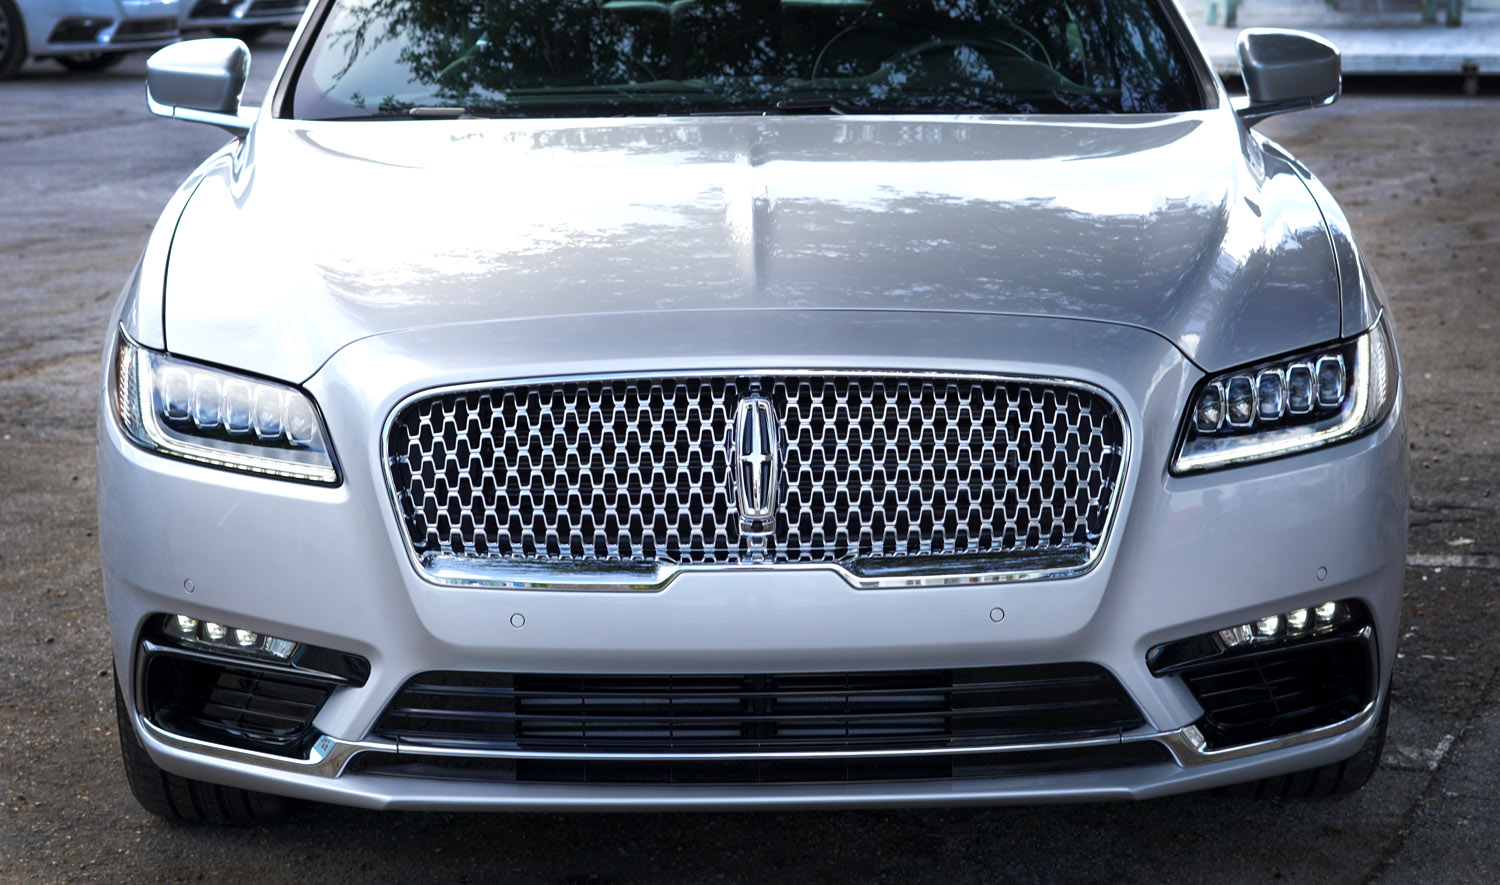 2017-lincoln-continental-front-grill-view